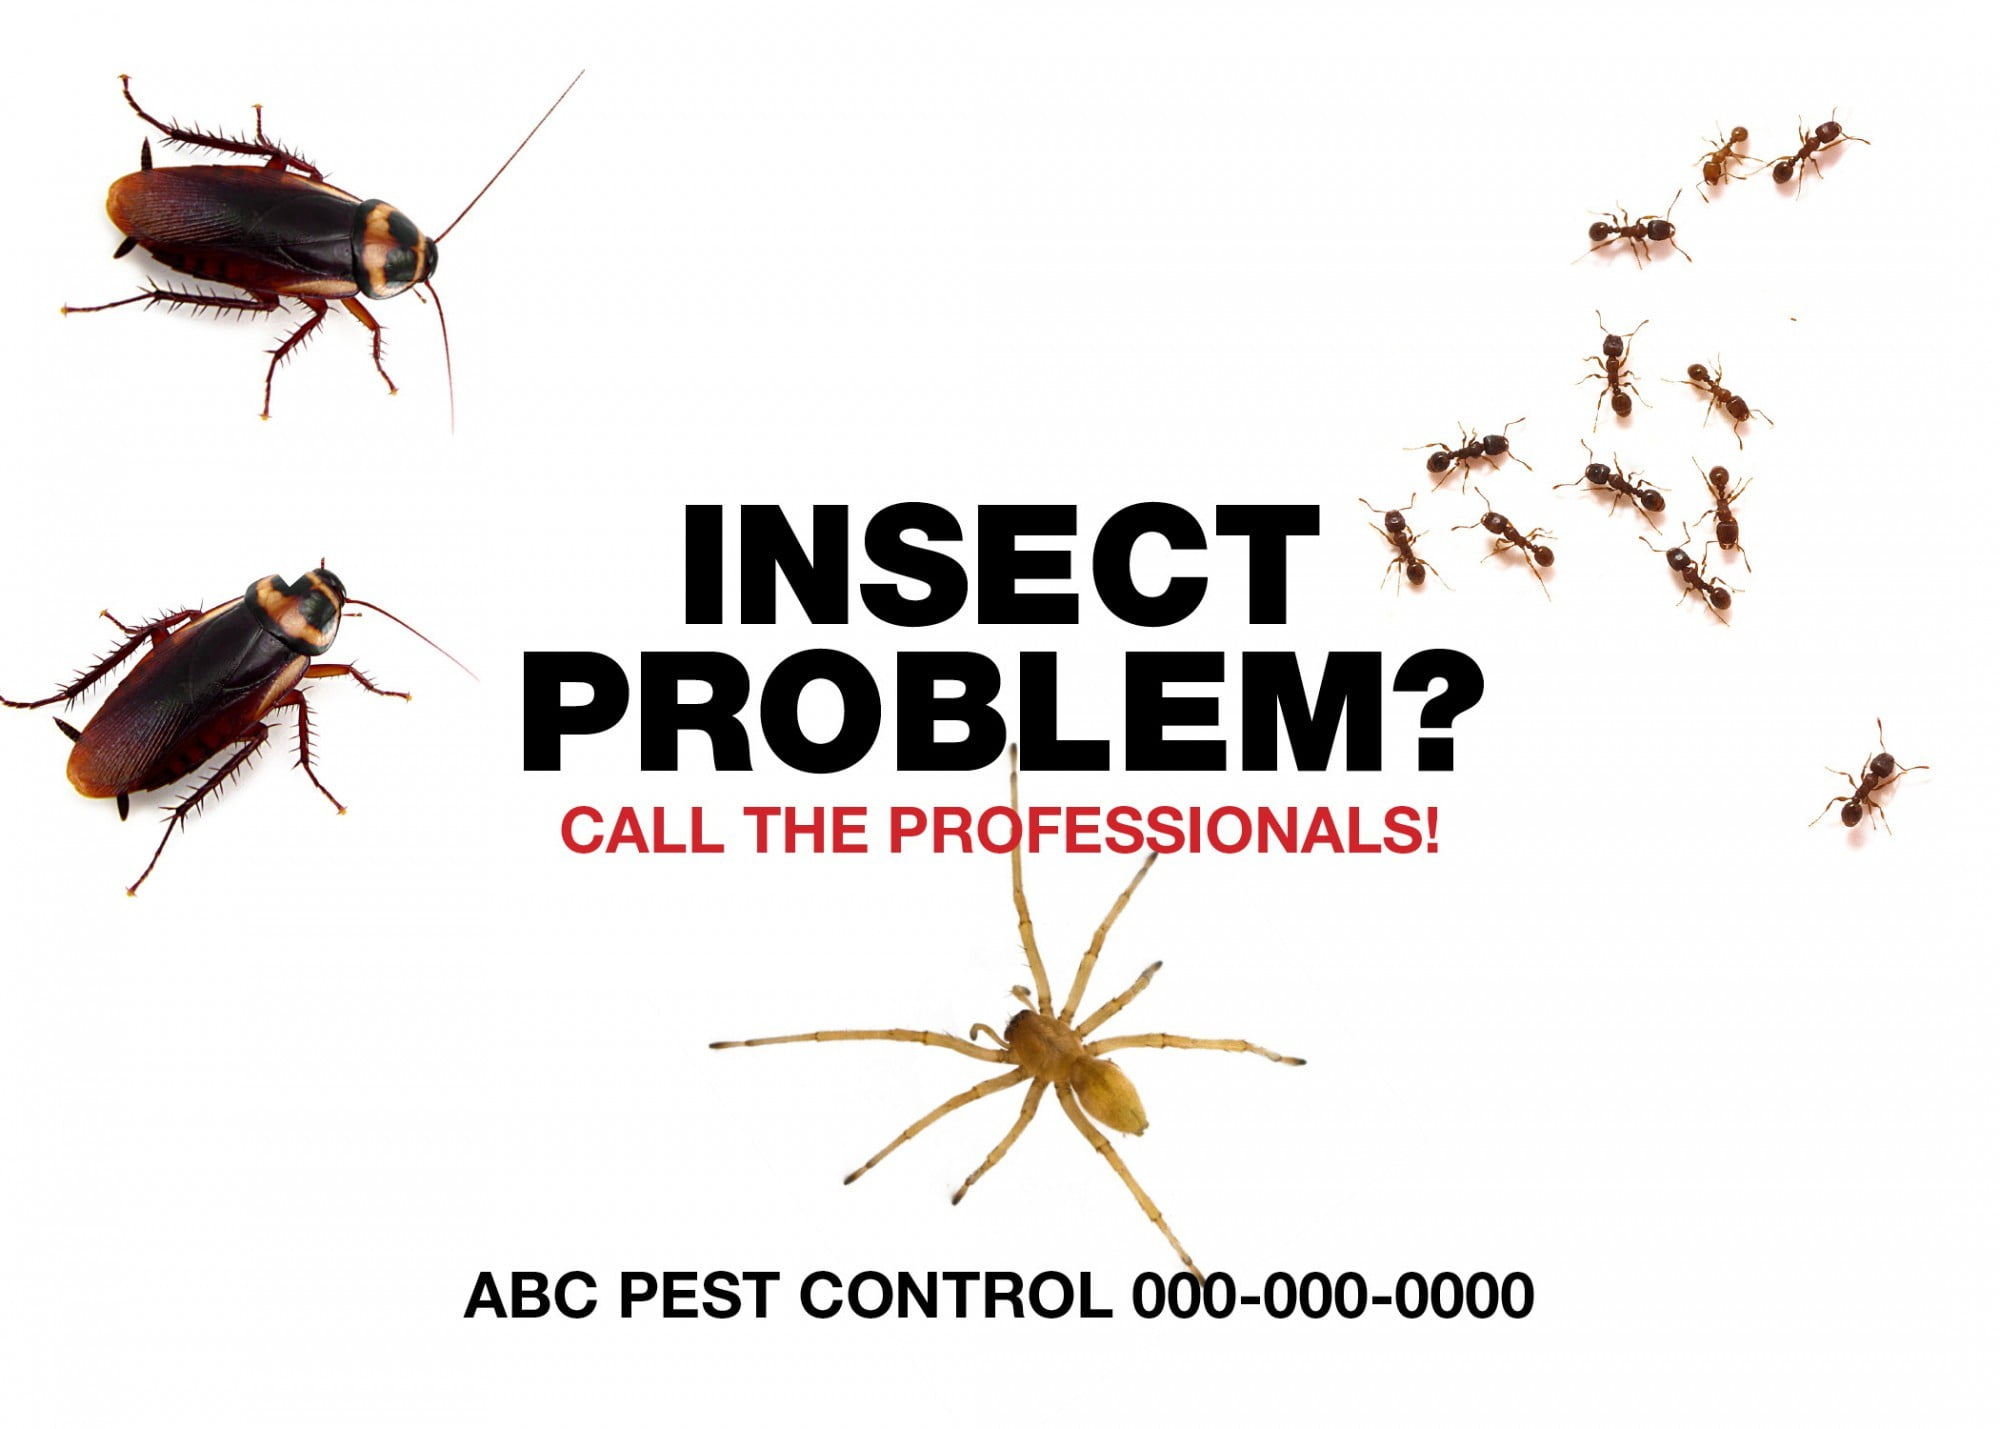 Pest-Control-Postcard-Sample-6-e1431471732723.jpg